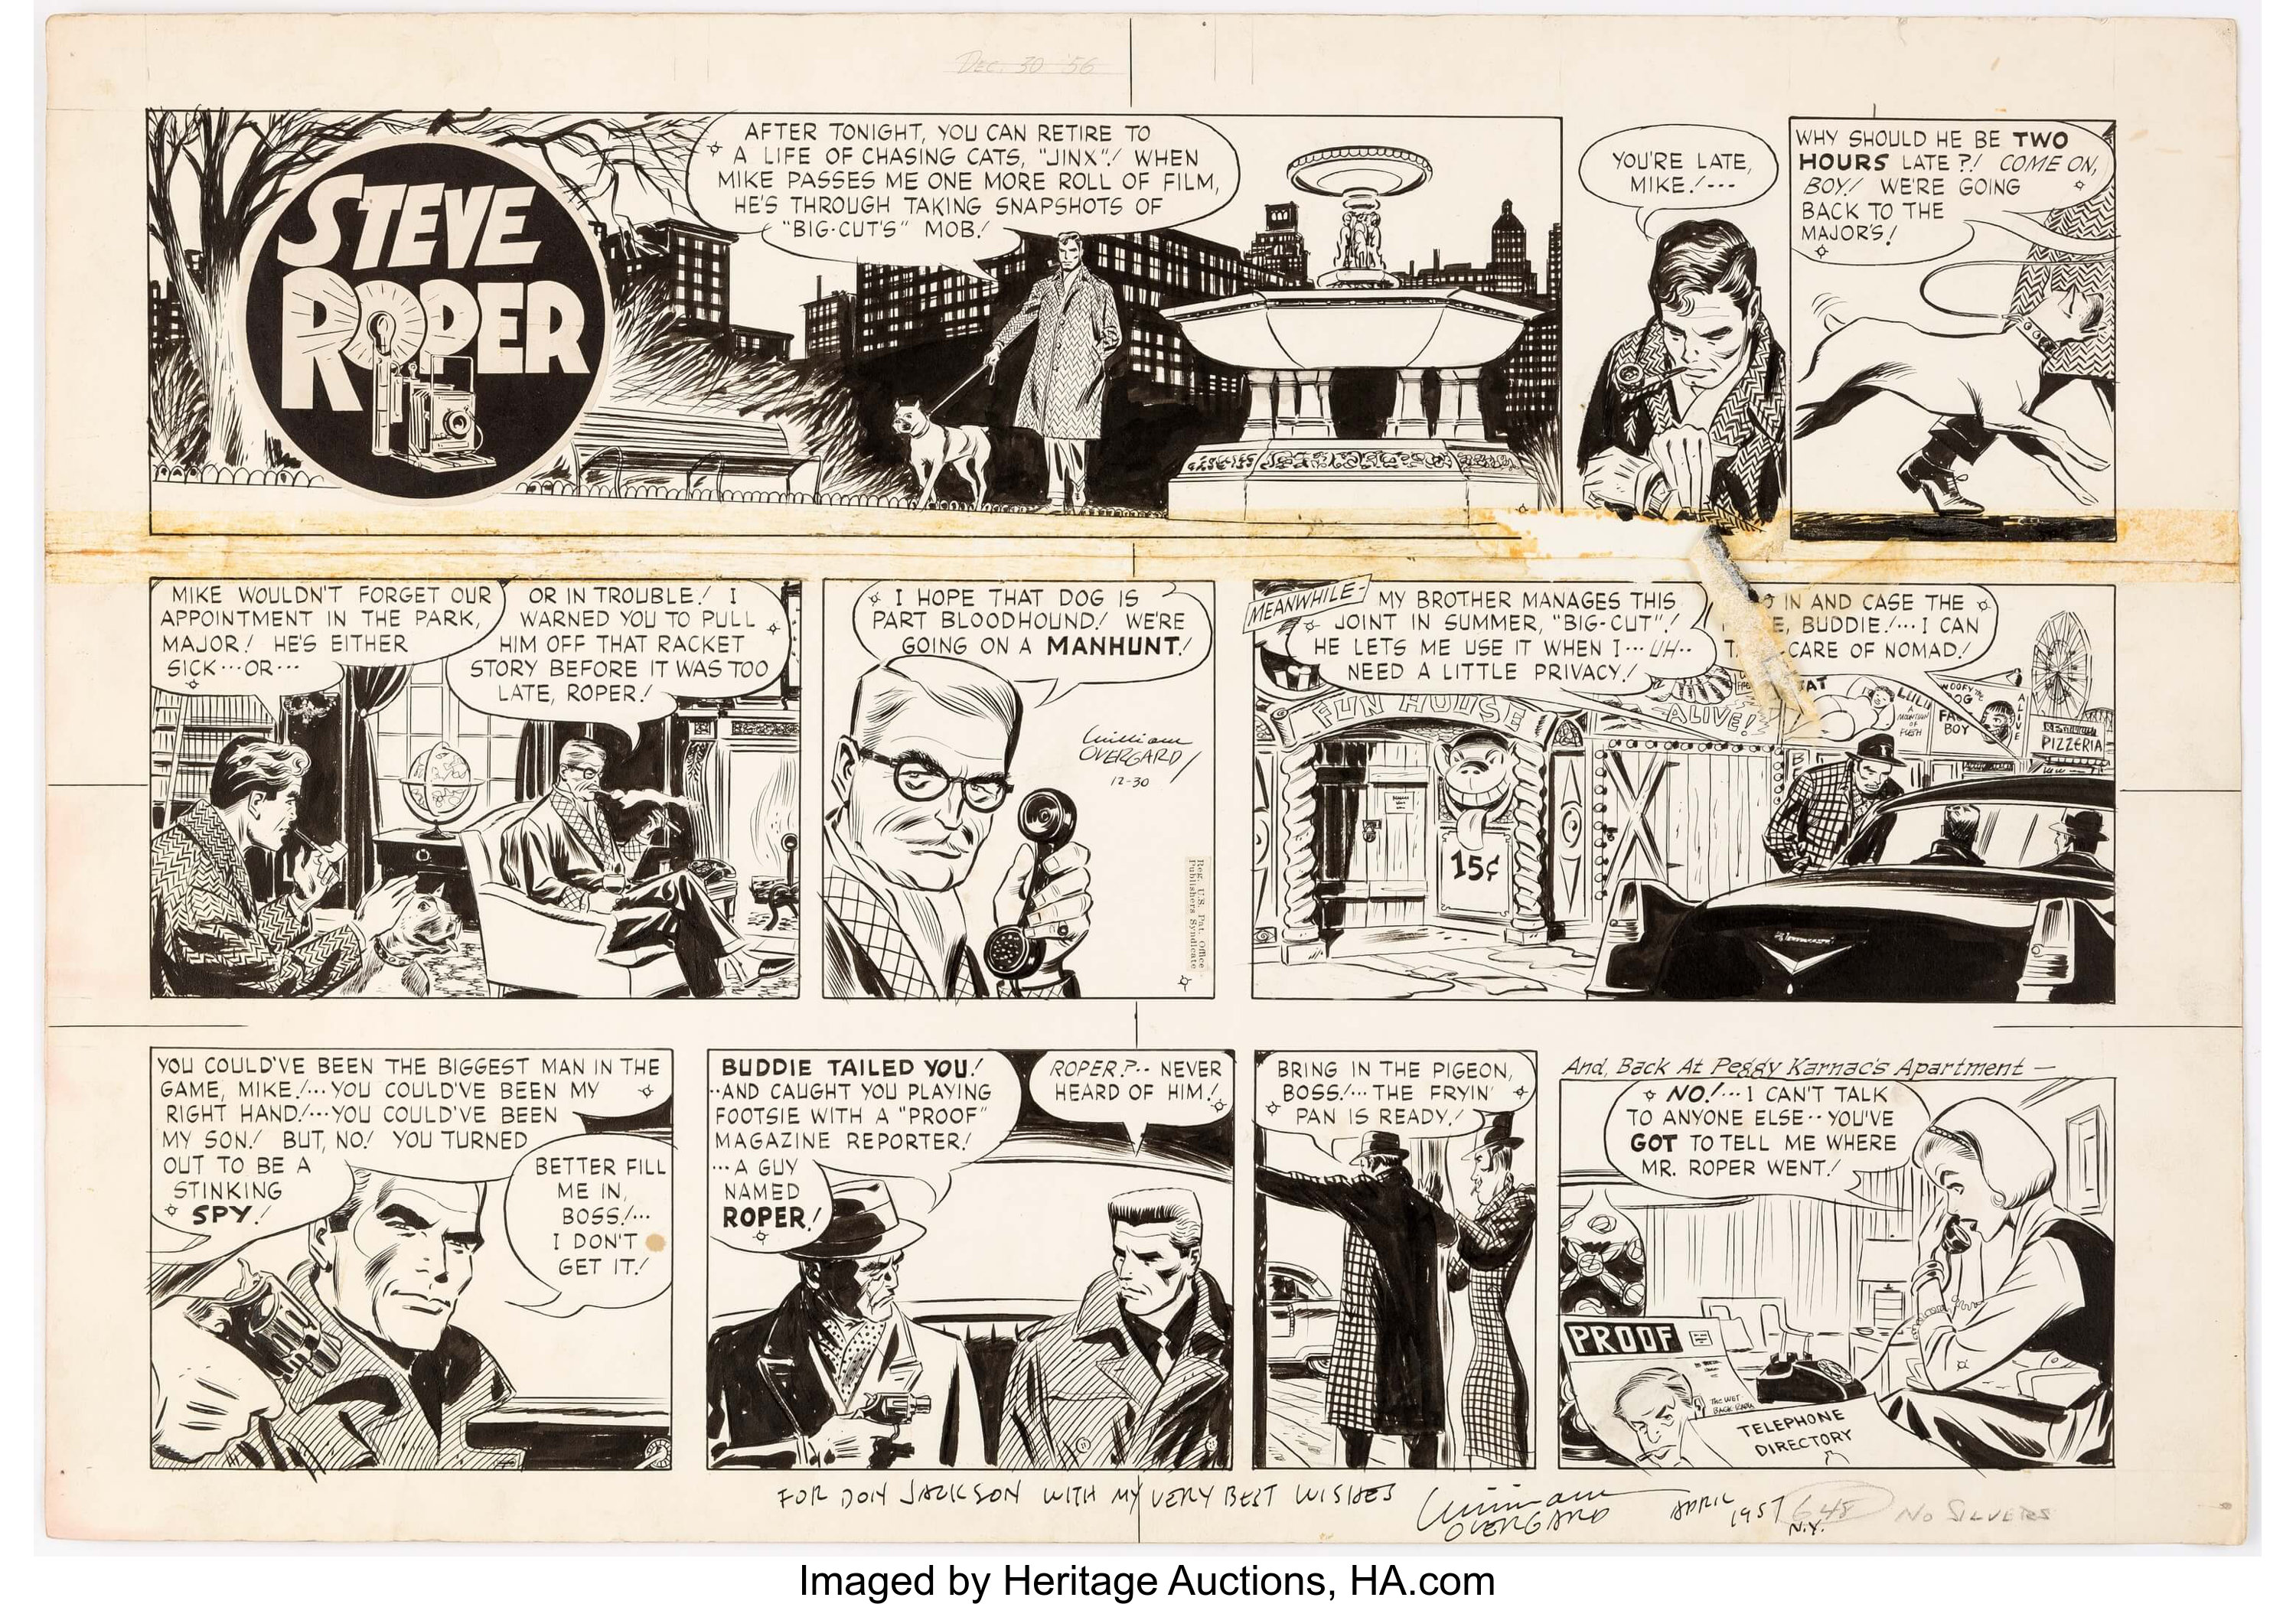 Steve Roper & Mike Nomad Original Art For Sale | ComicArtTracker